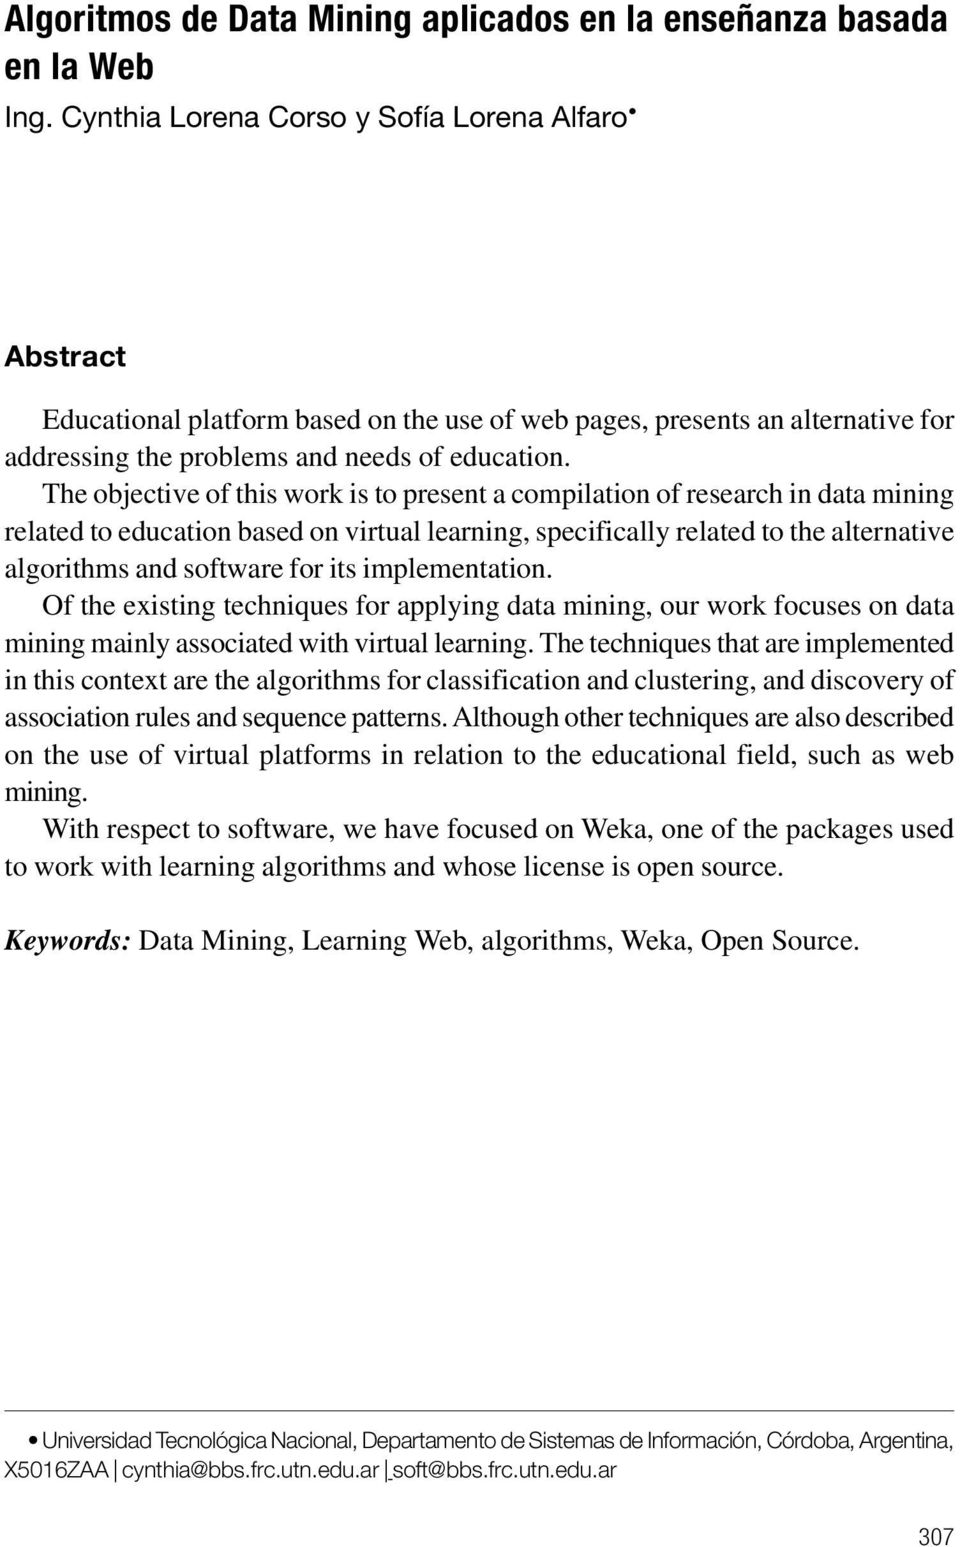 The objective of this work is to present a compilation of research in data mining related to education based on virtual learning, specifically related to the alternative algorithms and software for